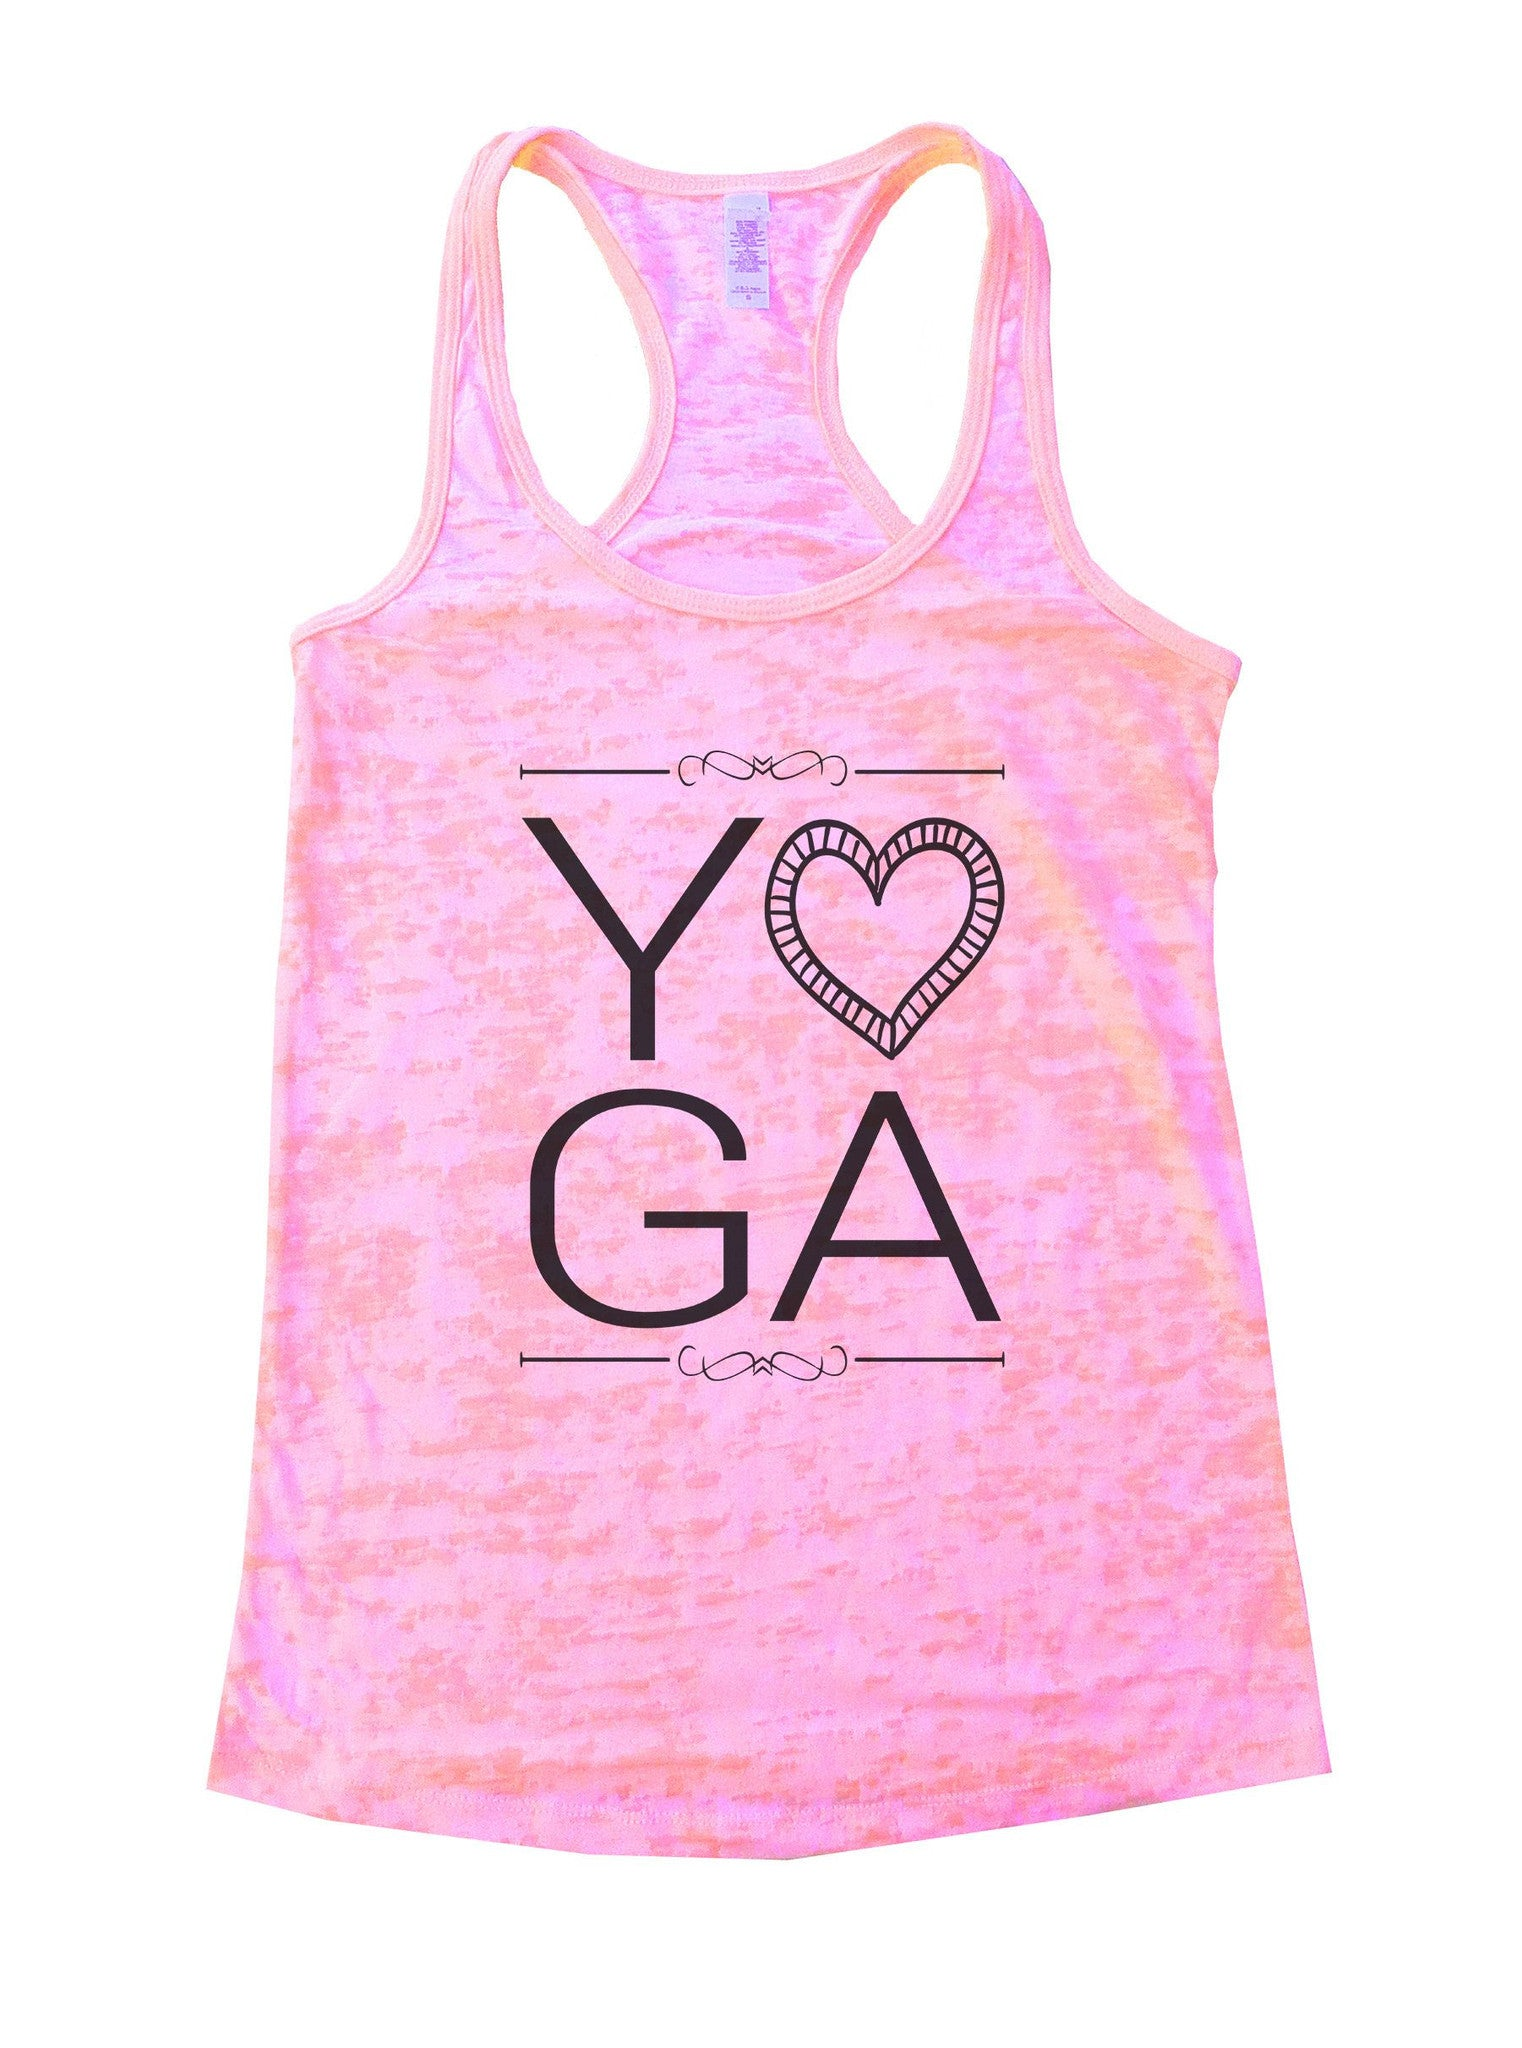 Yoga Burnout Tank Top By BurnoutTankTops.com - 838 - Funny Shirts Tank Tops Burnouts and Triblends  - 1